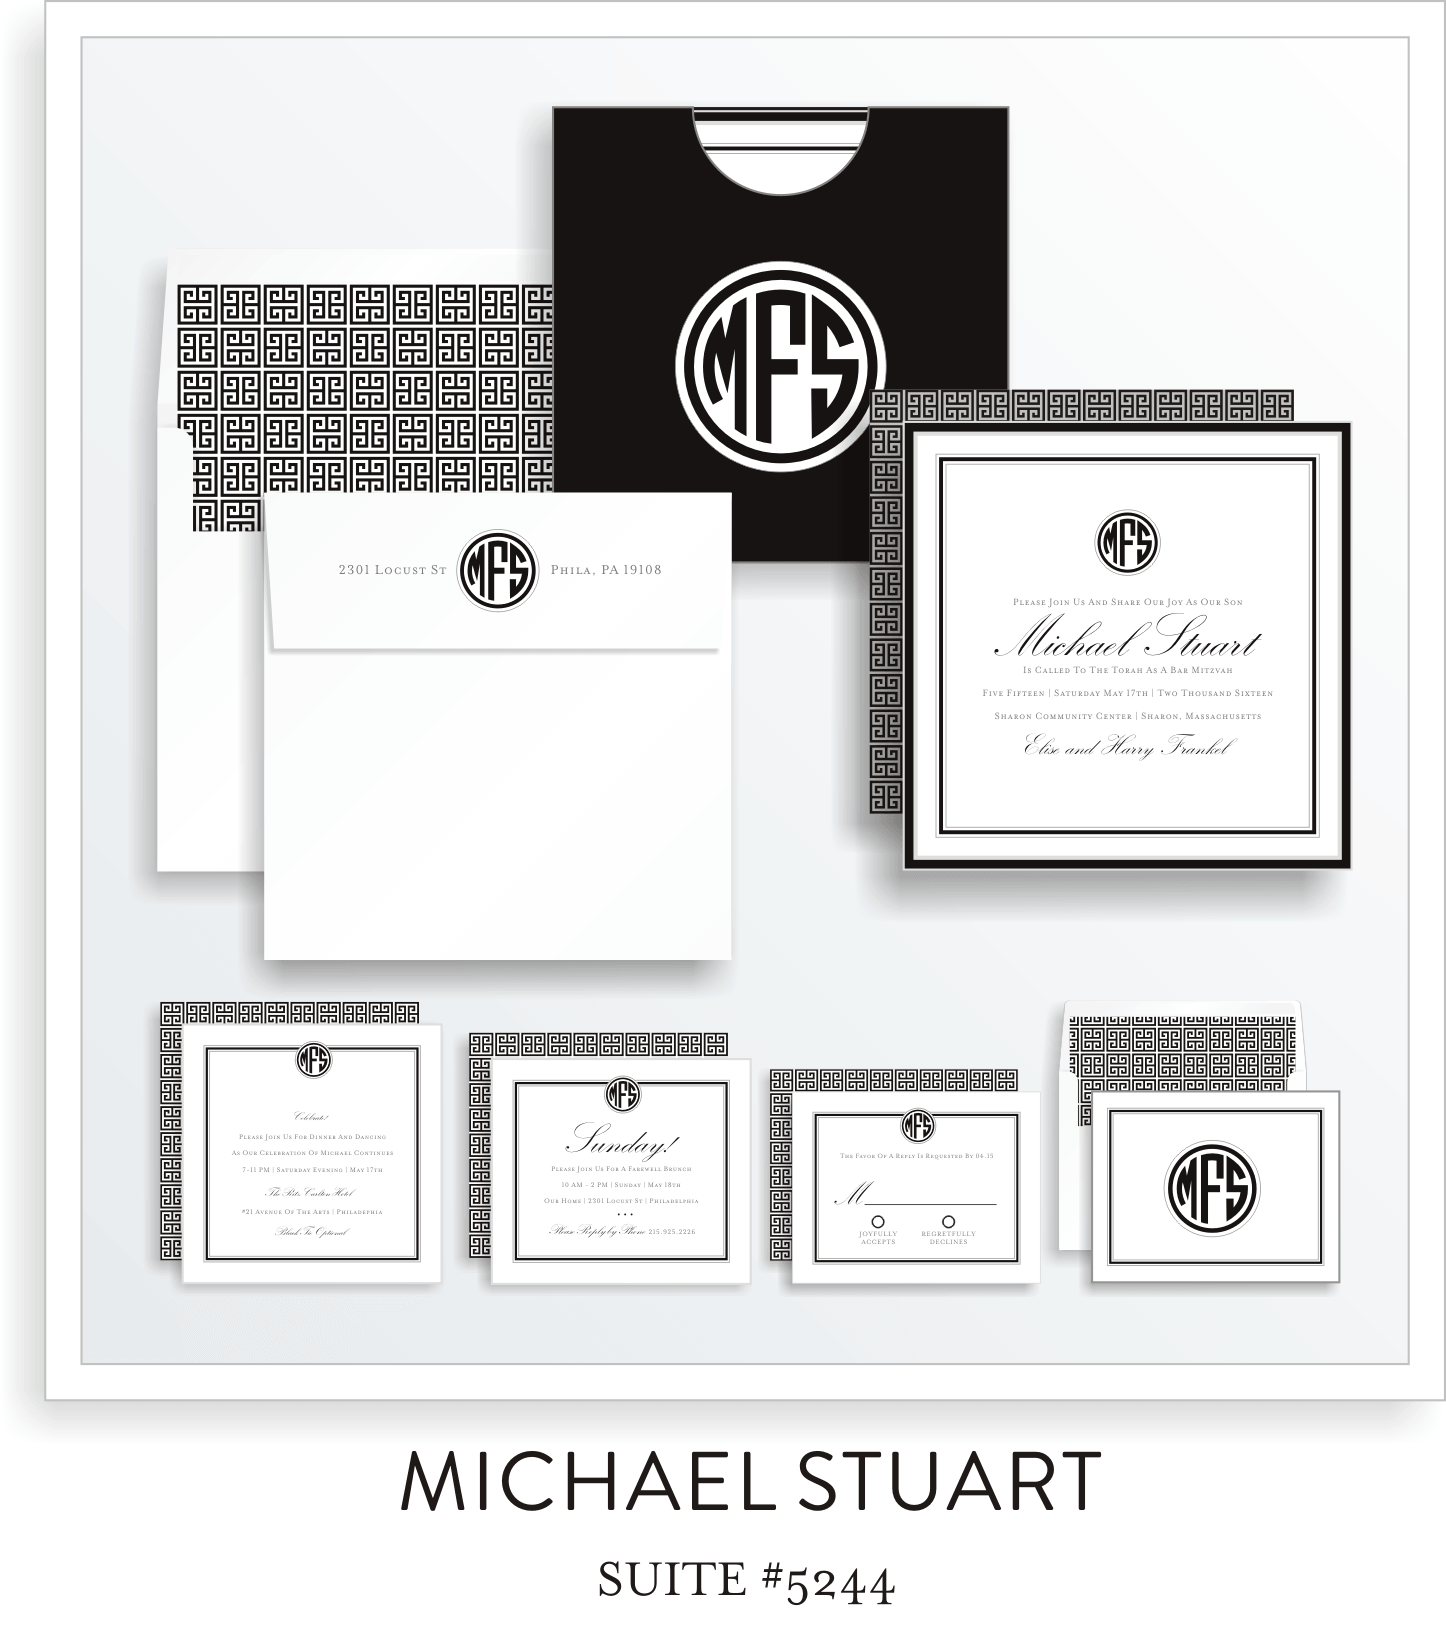 Copy of Copy of Bar Mitzvah Invitation Suite 5244 - Michael Stuart